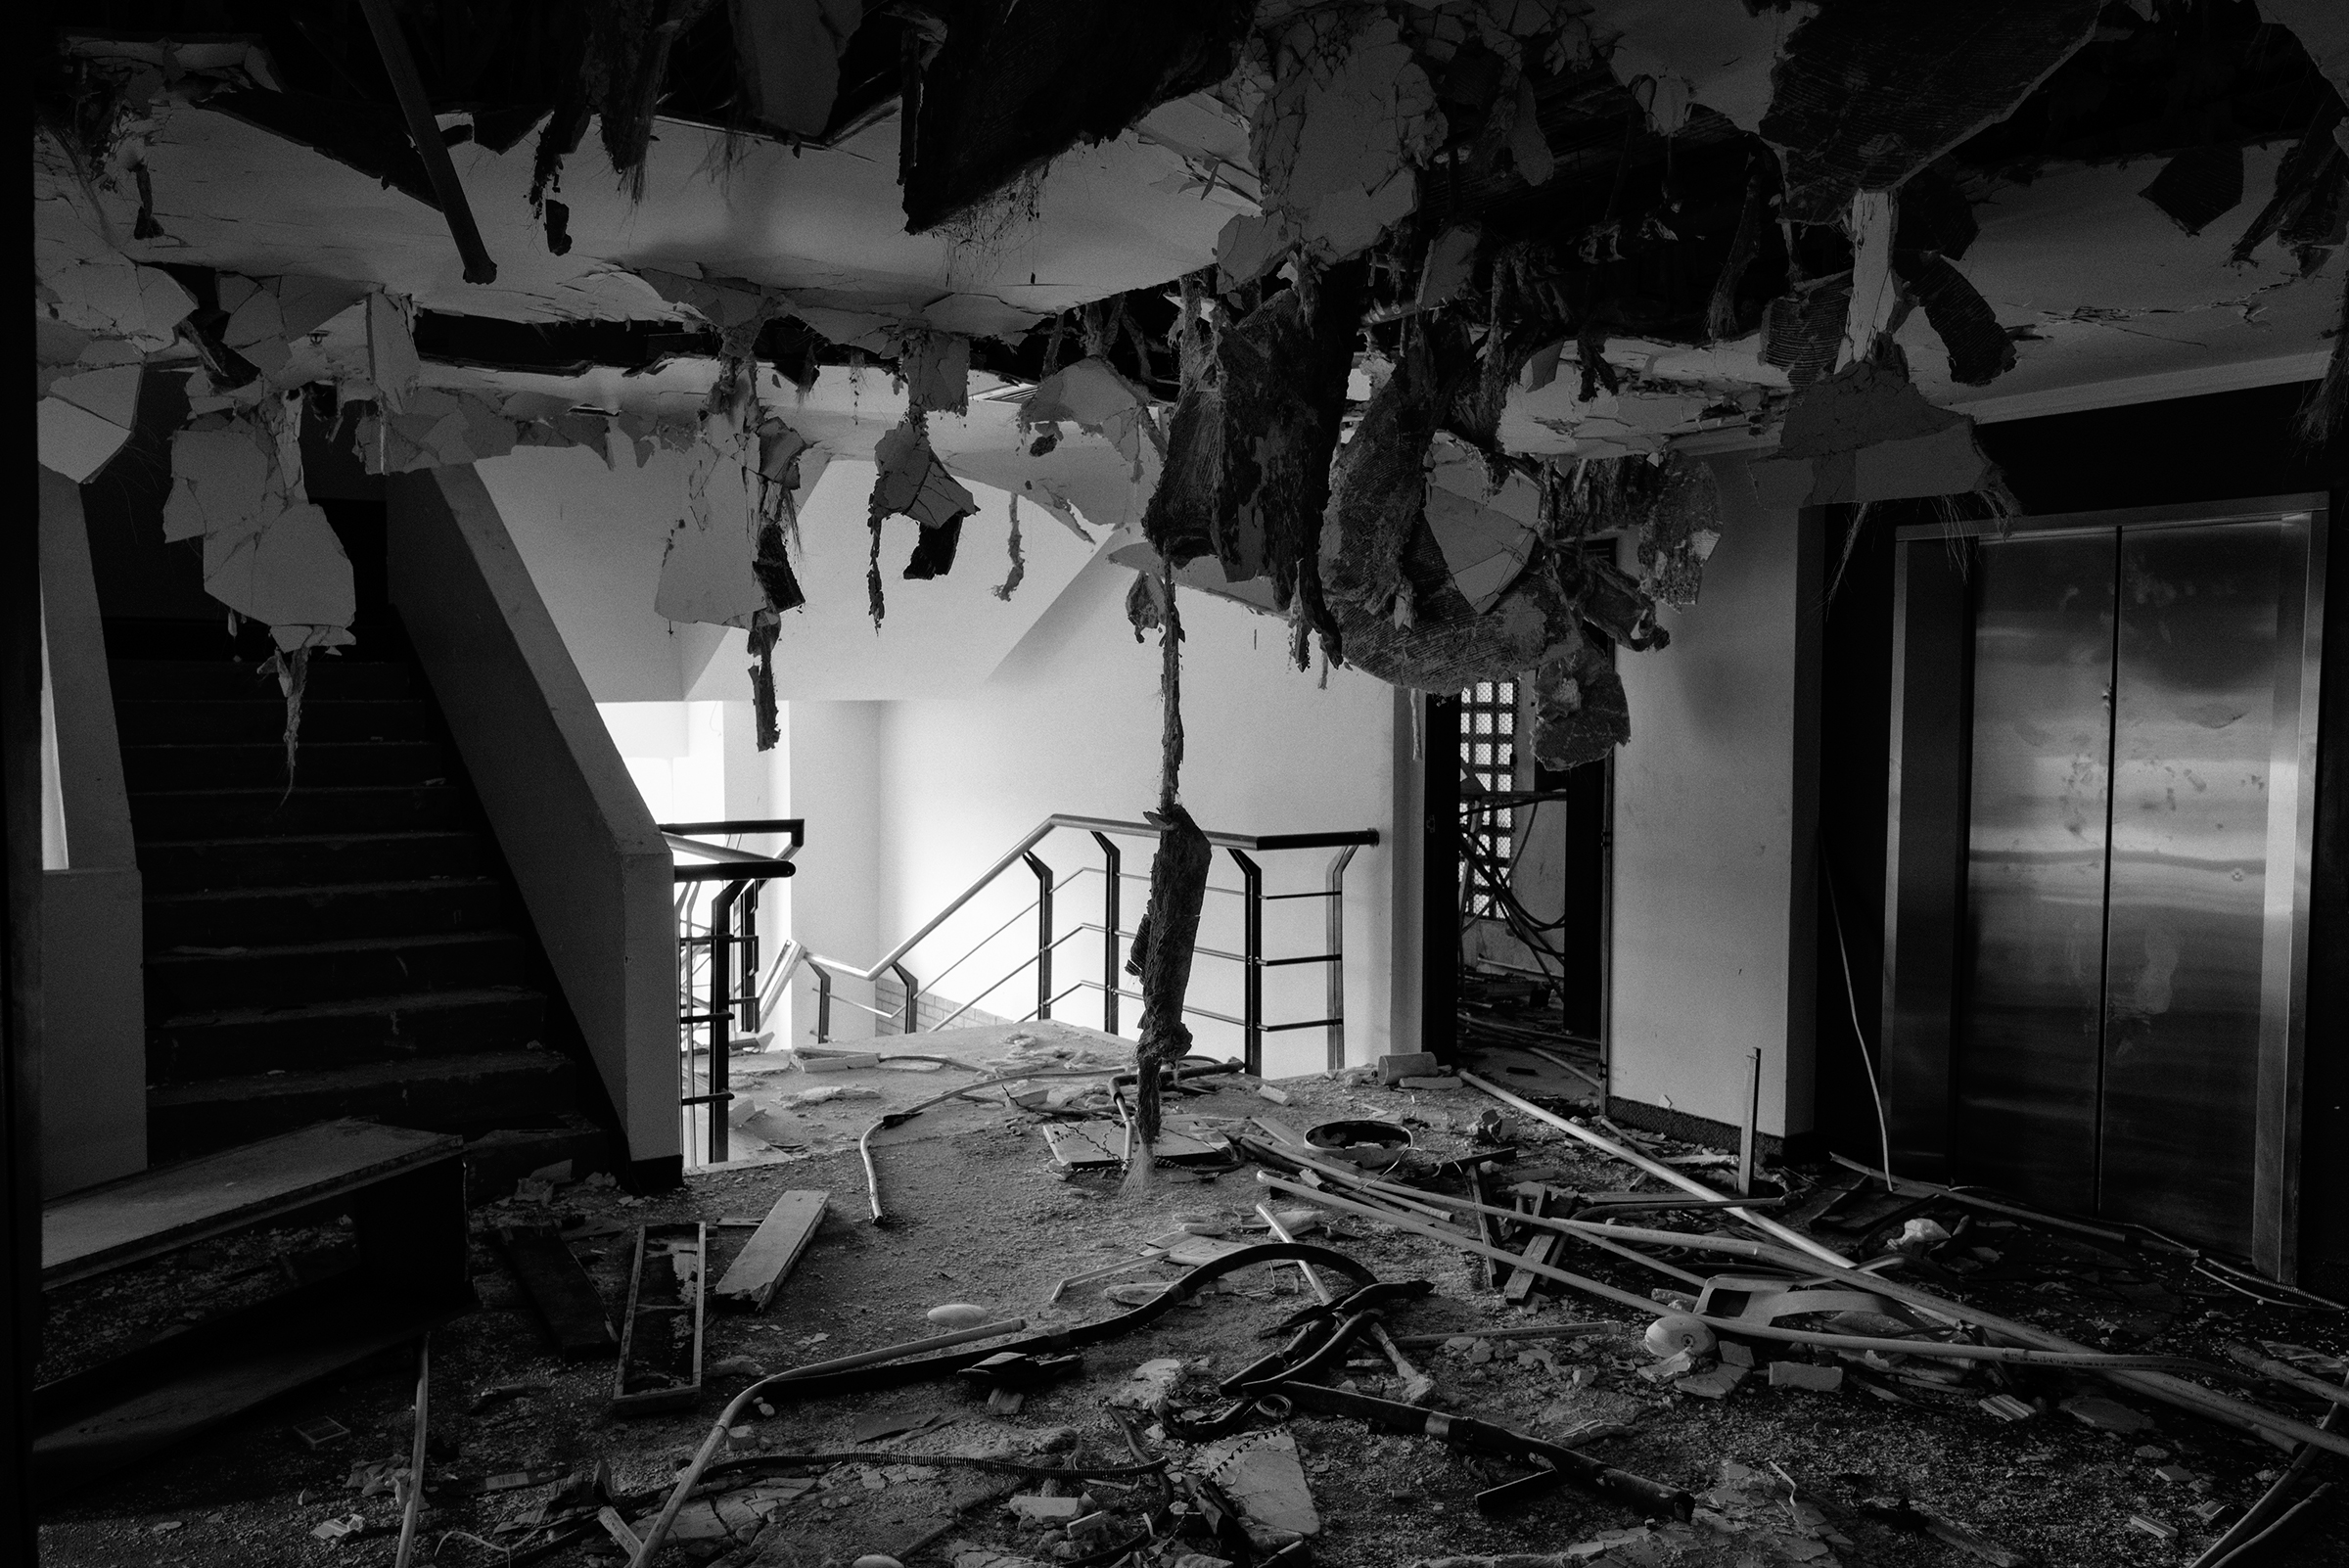 An interior of a hotel after it was looted in Maracaibo in April. The city has experienced widespread looting amid electricity blackouts and shortages.